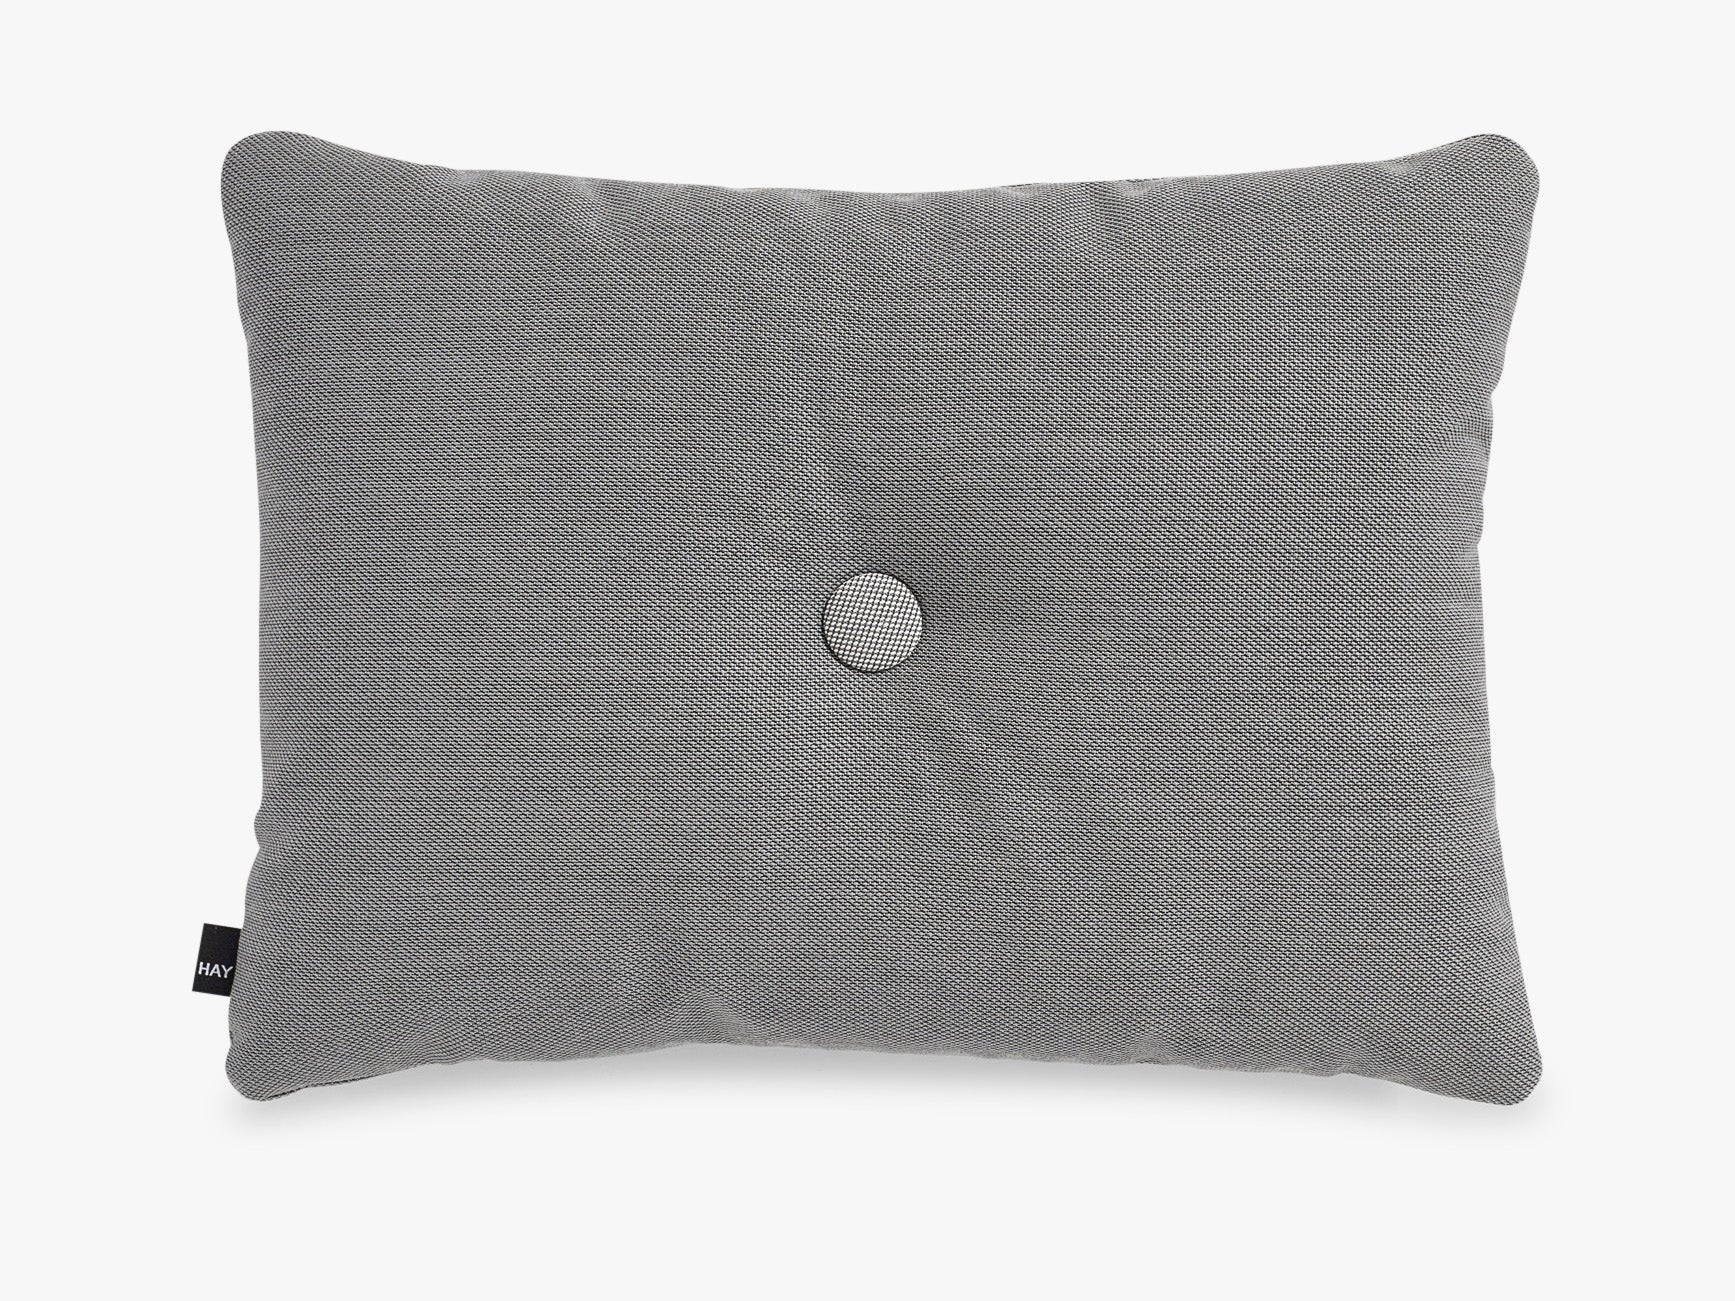 Dot Cushion Steelcut 1 dot, Dark Grey fra HAY